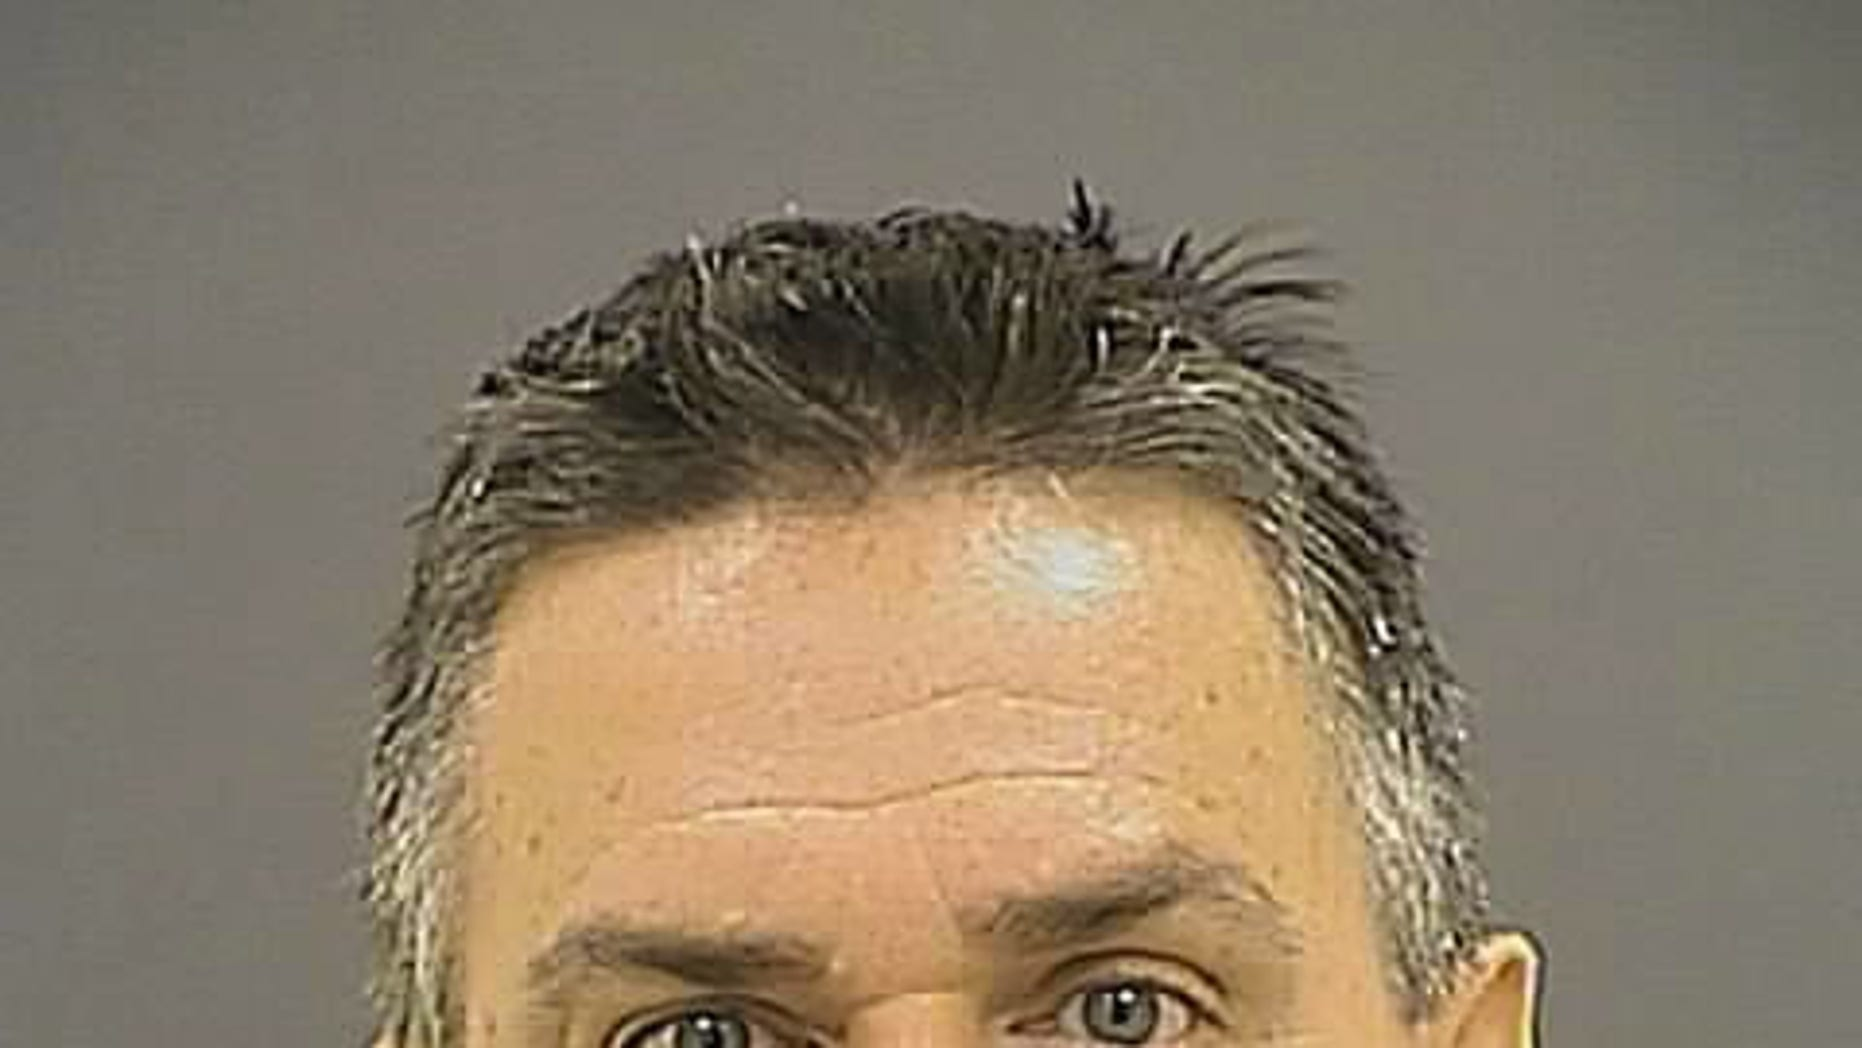 This booking photo provided by the Baltimore Police Department shows Jeffrey Bolger, 49, of Eldersburg, Md.  Bolger, a Baltimore police officer faces trial July 28, 2014 on animal cruelty charges for allegedly cutting the throat of a dog that had been restrained after biting a woman. The female Shar-Pei died from blood loss Saturday, June 14, 2014. Witnesses said Bolger cut her throat with a knife after saying he was going to gut the dog. He was at the scene to assist other officers after one said the dog was foaming at the mouth and appeared to be malnourished.  (AP Photo/Baltimore Police Department)